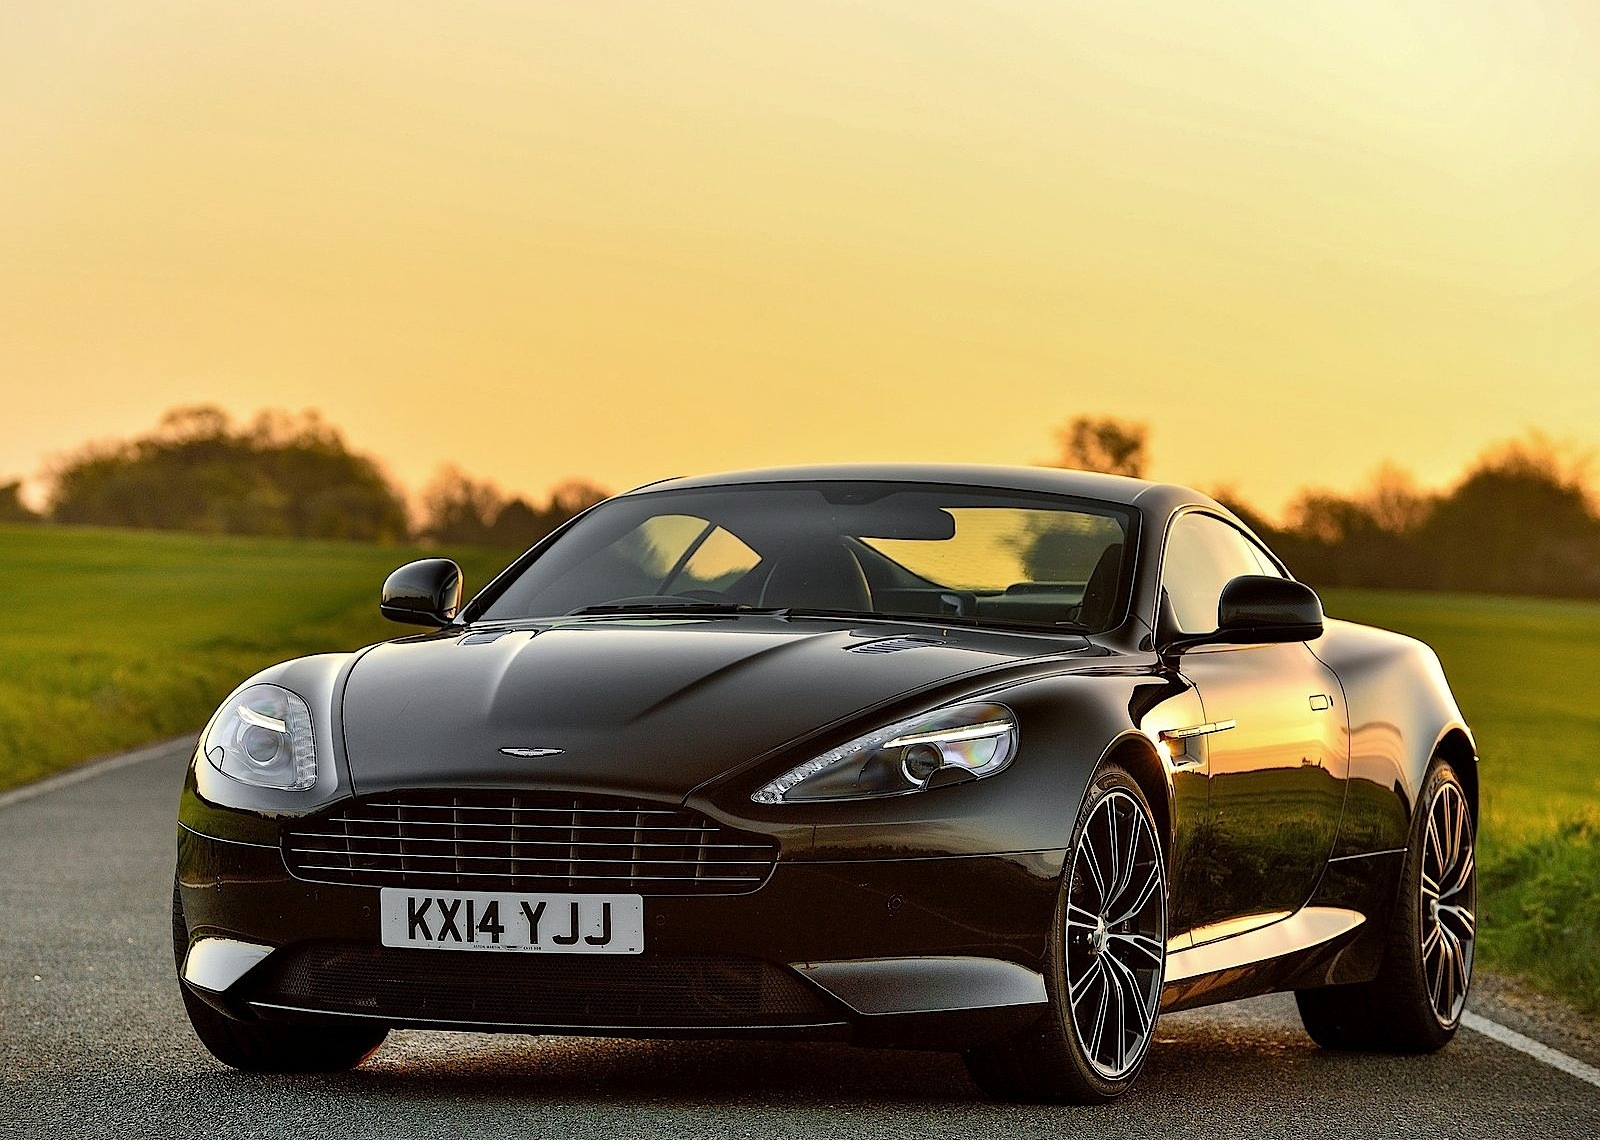 aston martin db9 carbon edition specs 2014 2015 2016 autoevolution. Black Bedroom Furniture Sets. Home Design Ideas